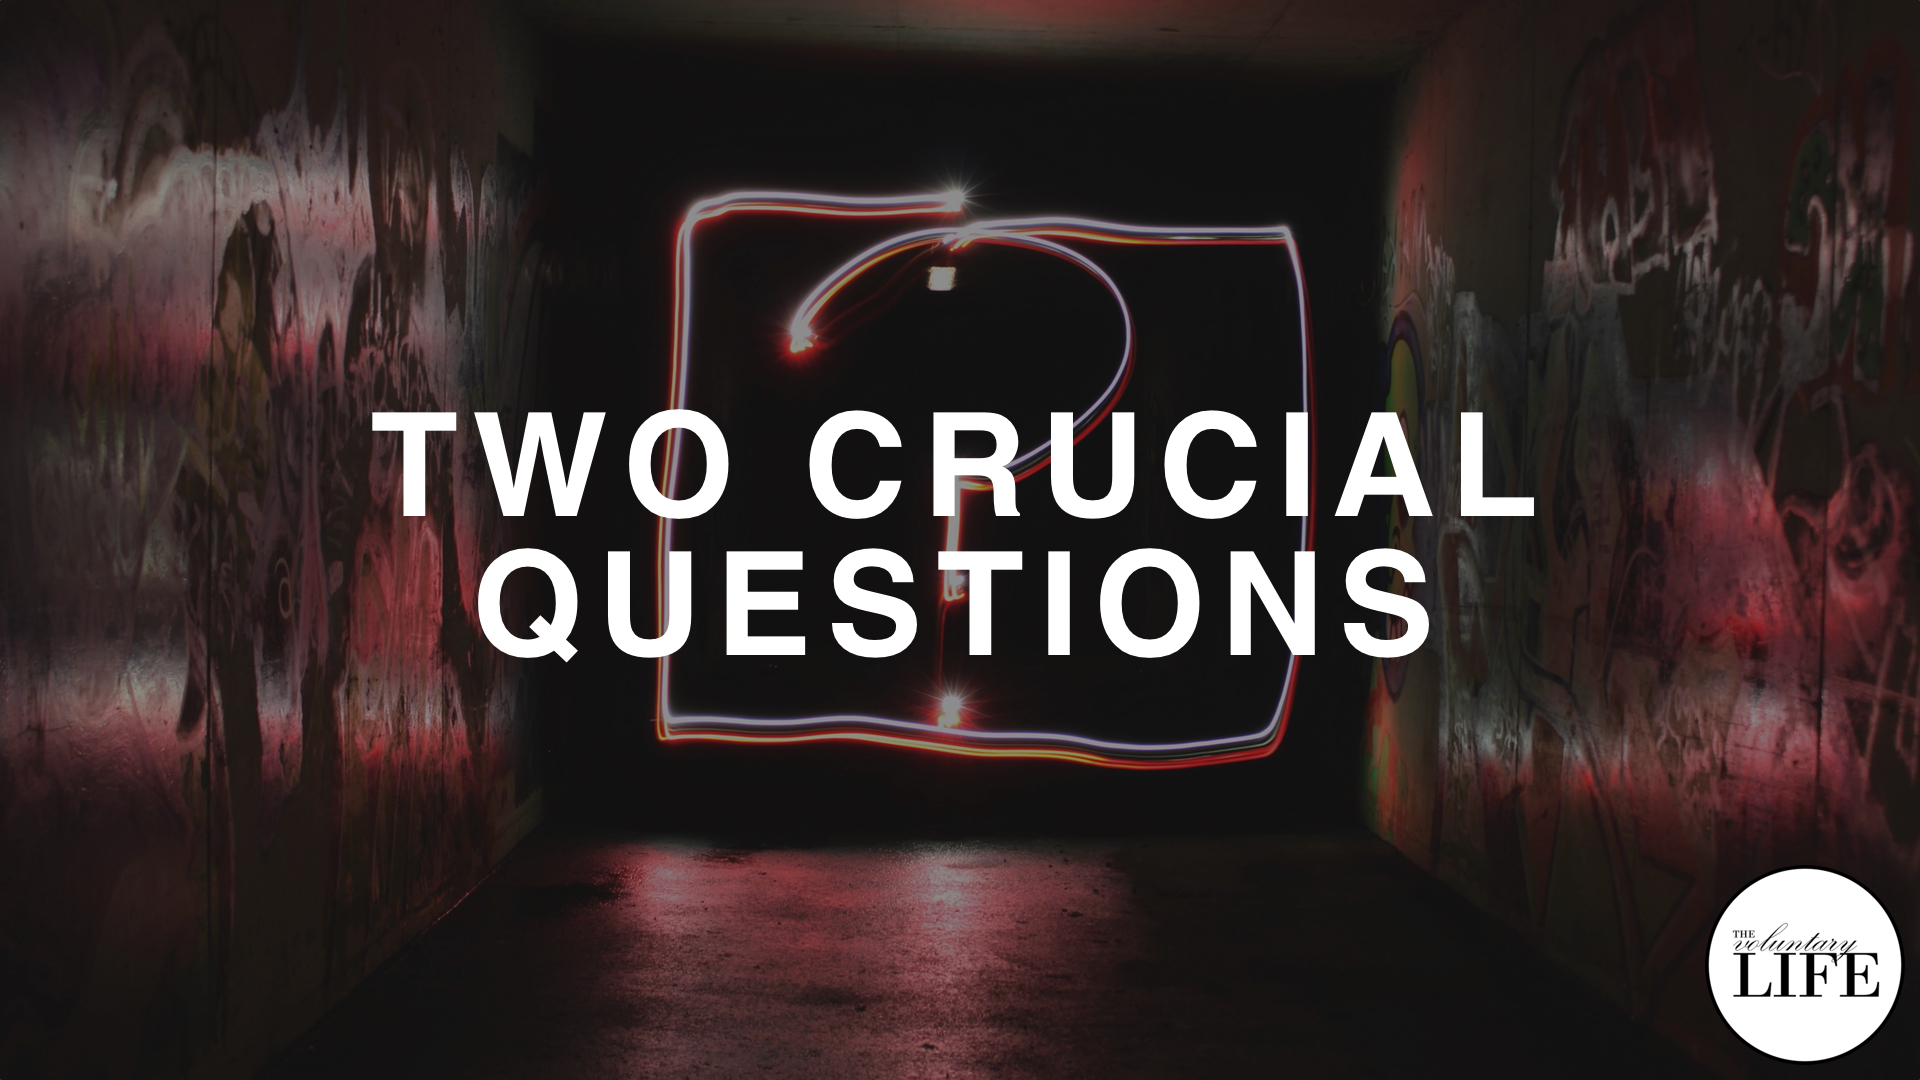 169 Two Crucial Questions